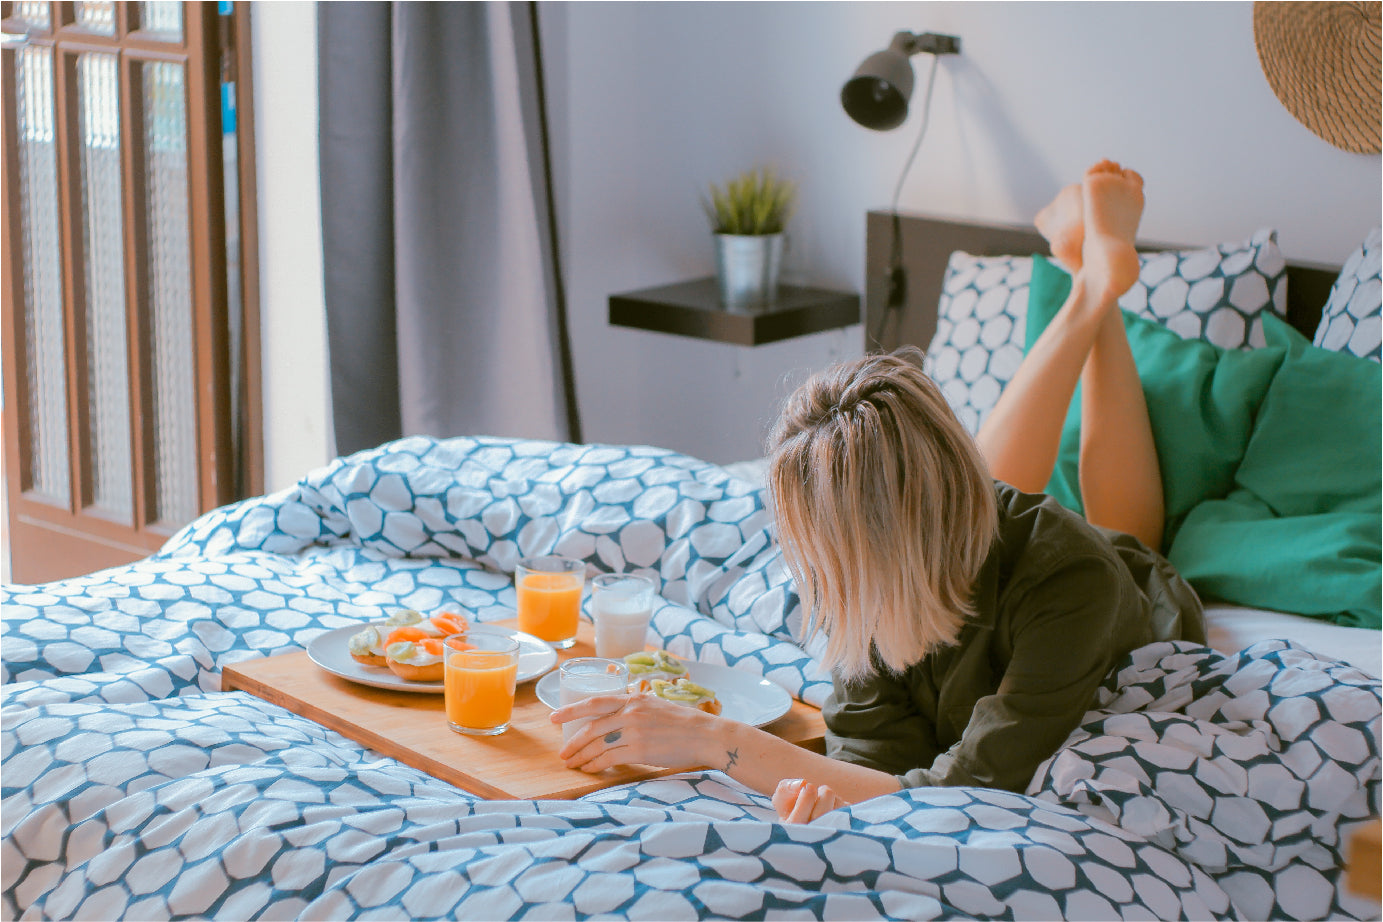 Eco-Friendly Morning Routine With These 5 Tips